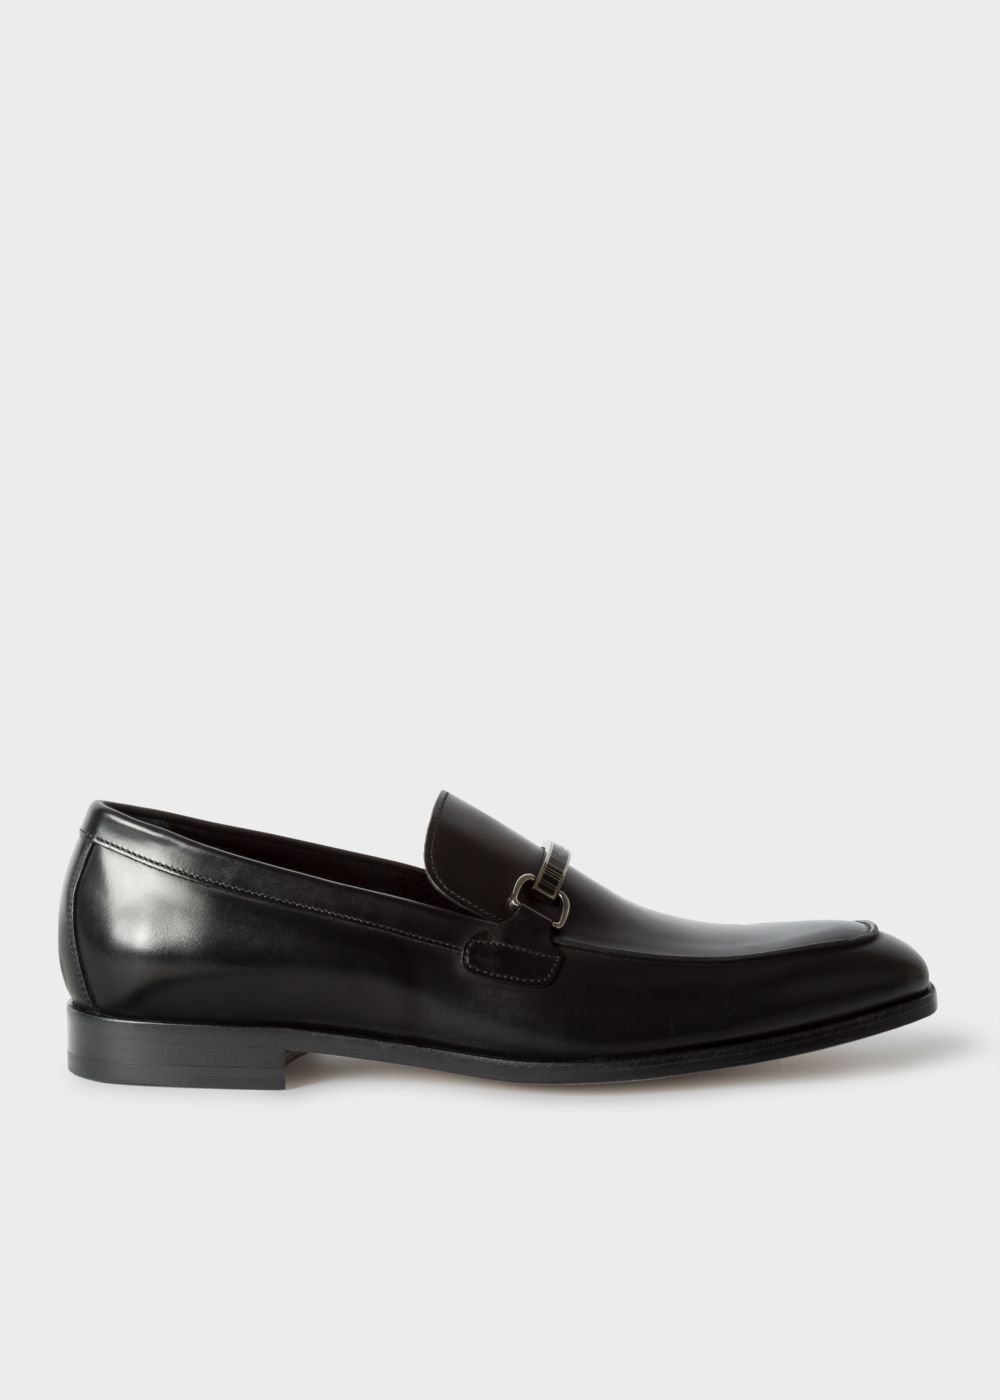 Paul Smith Men's Black Leather 'Grover' Loafers